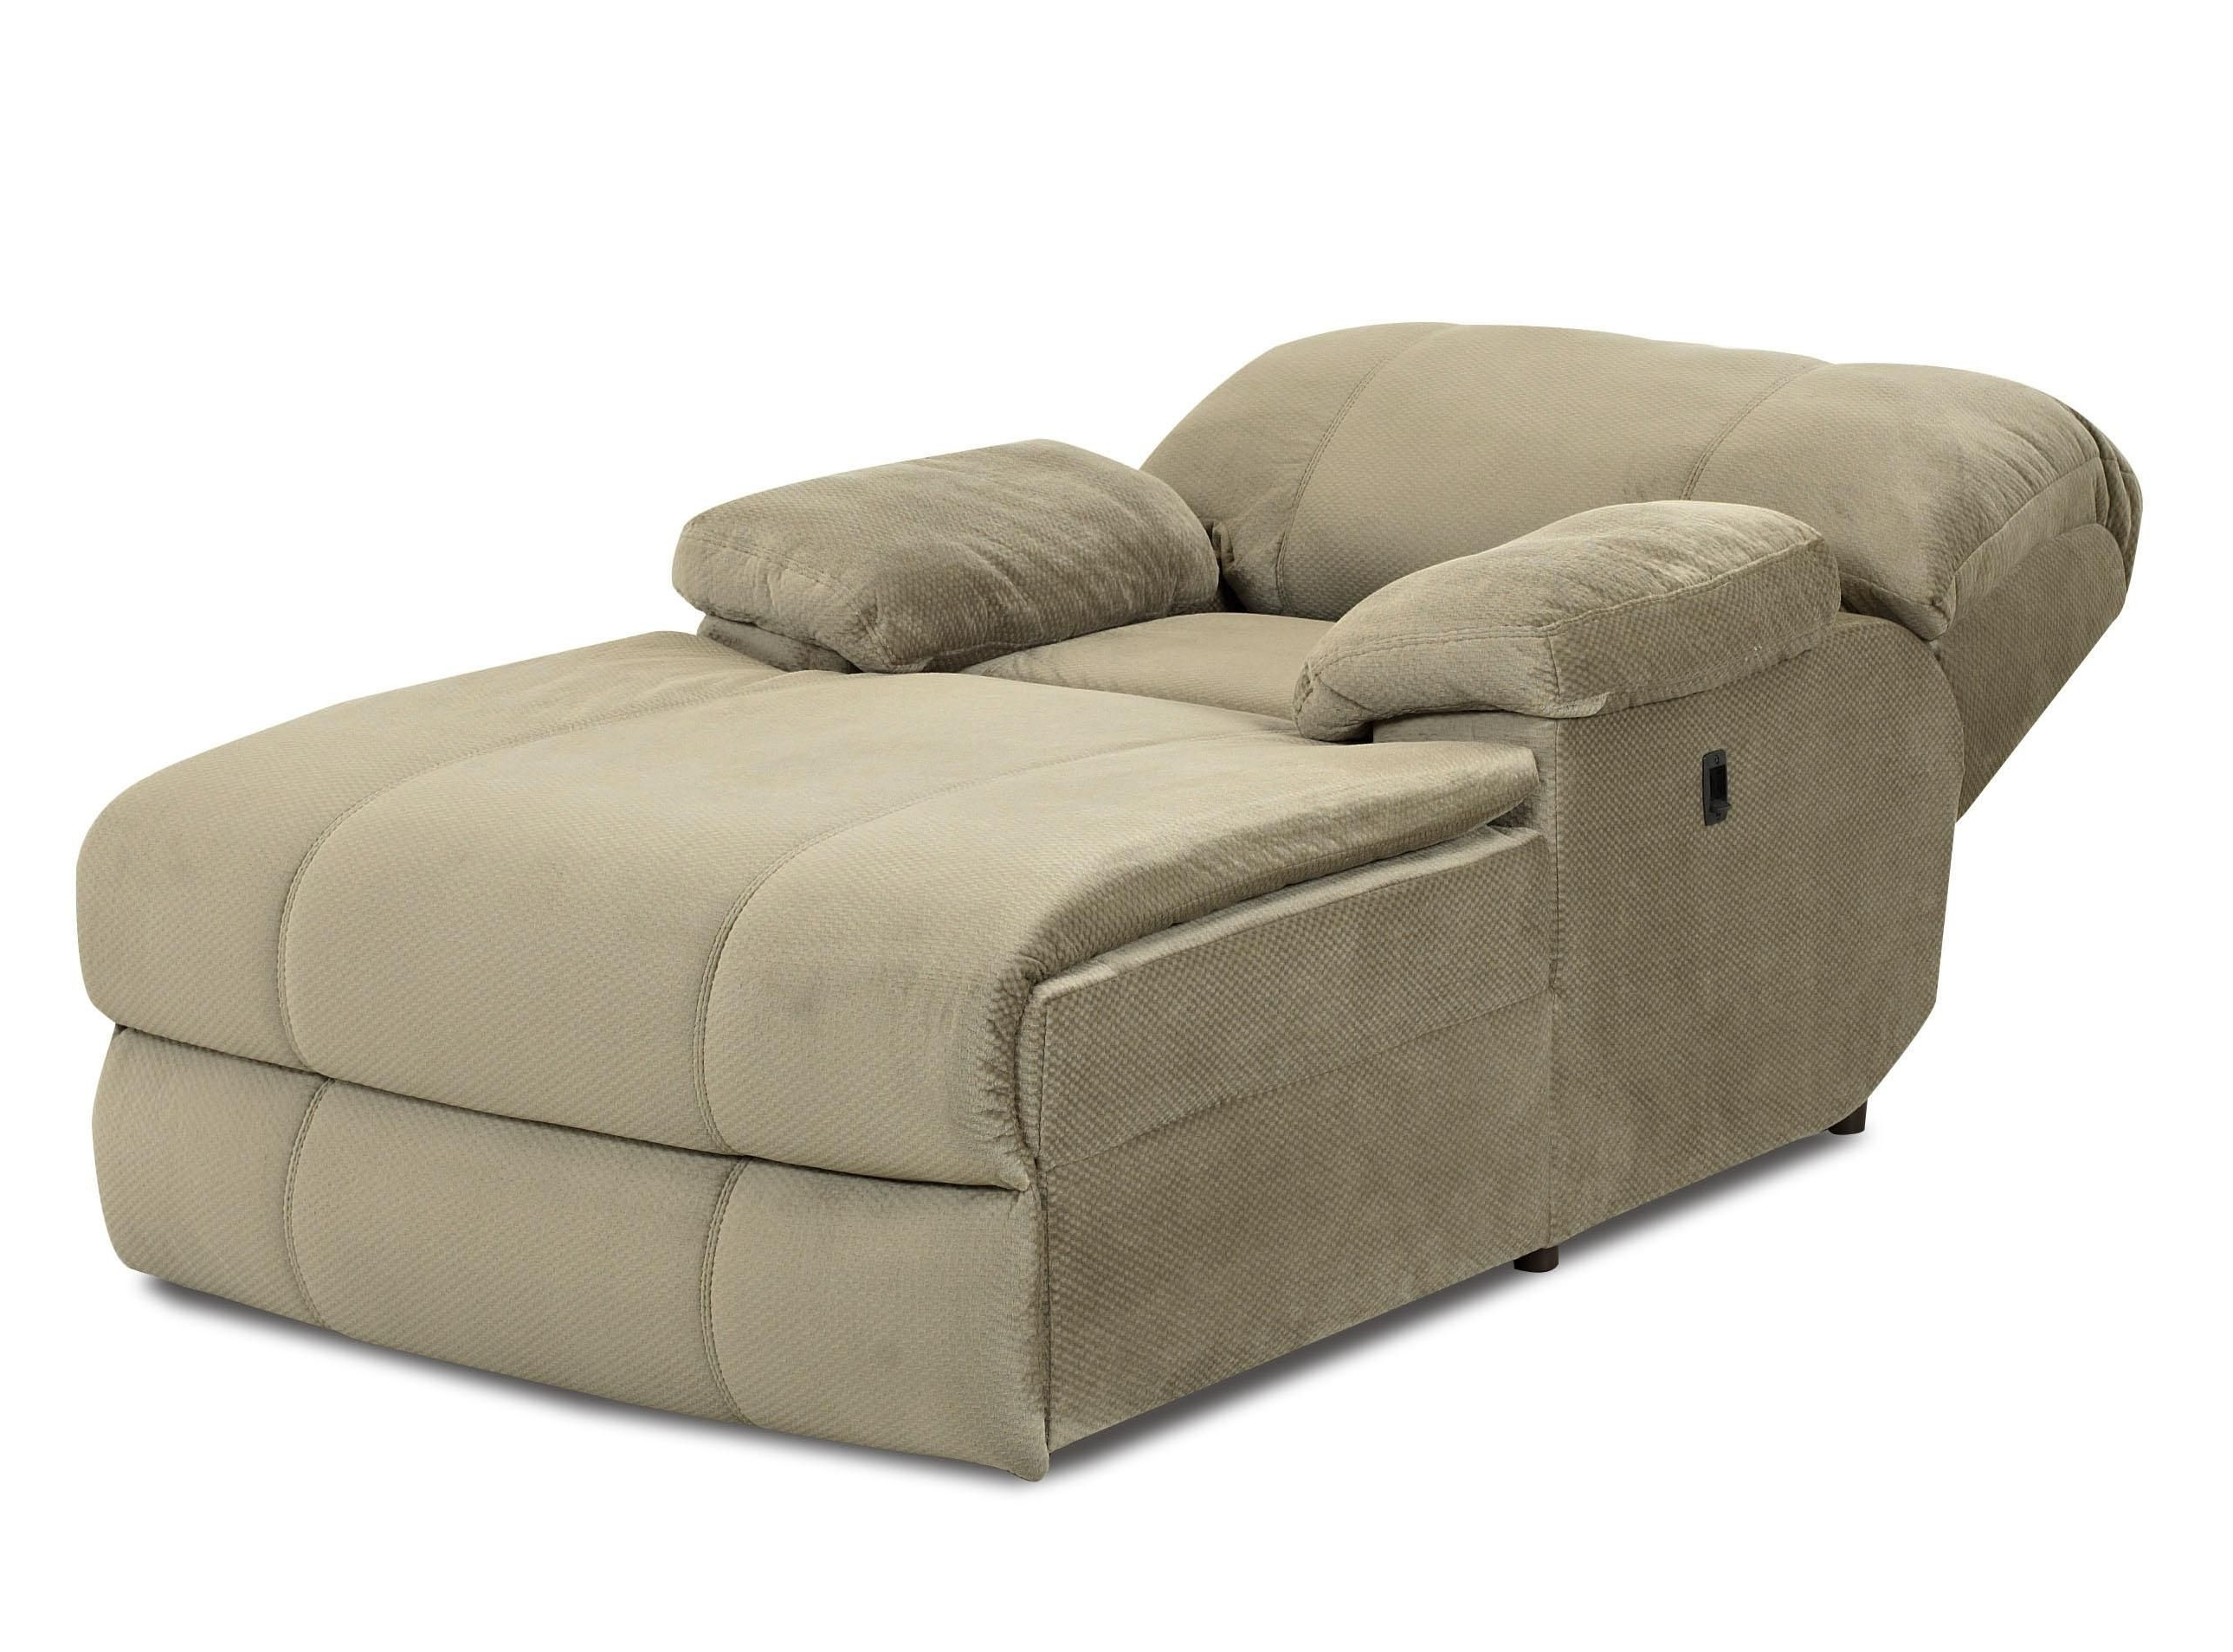 Best 15+ of Oversized Chaise Lounge Indoor Chairs